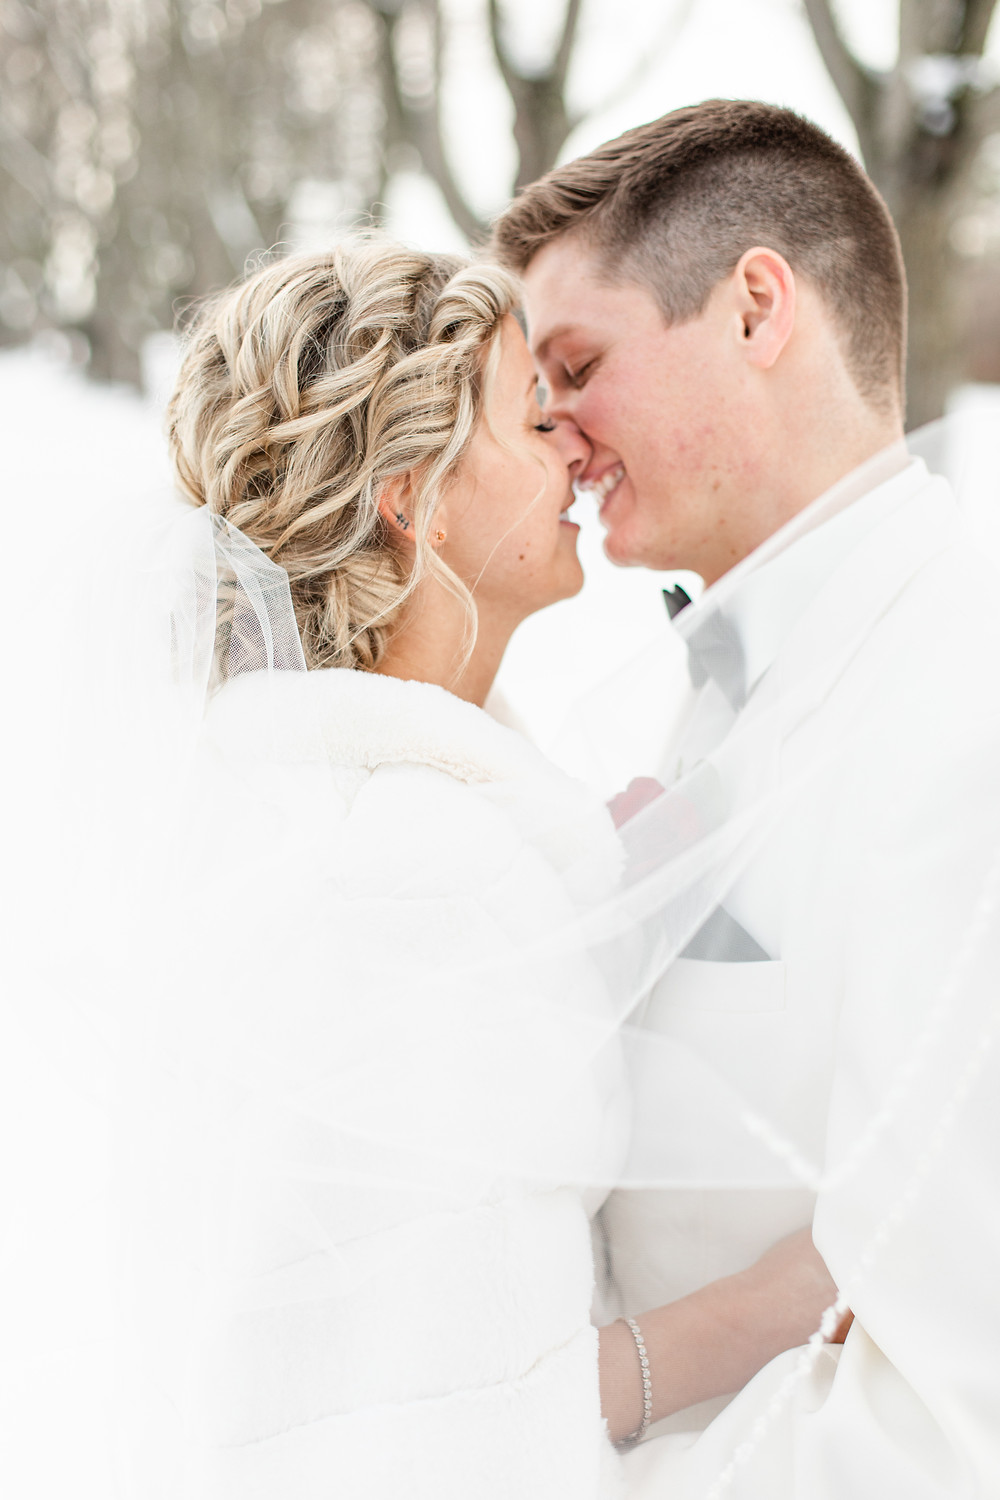 josh and Andrea photography husband and wife team michigan winter wedding south haven bride and groom kissing in snow forest